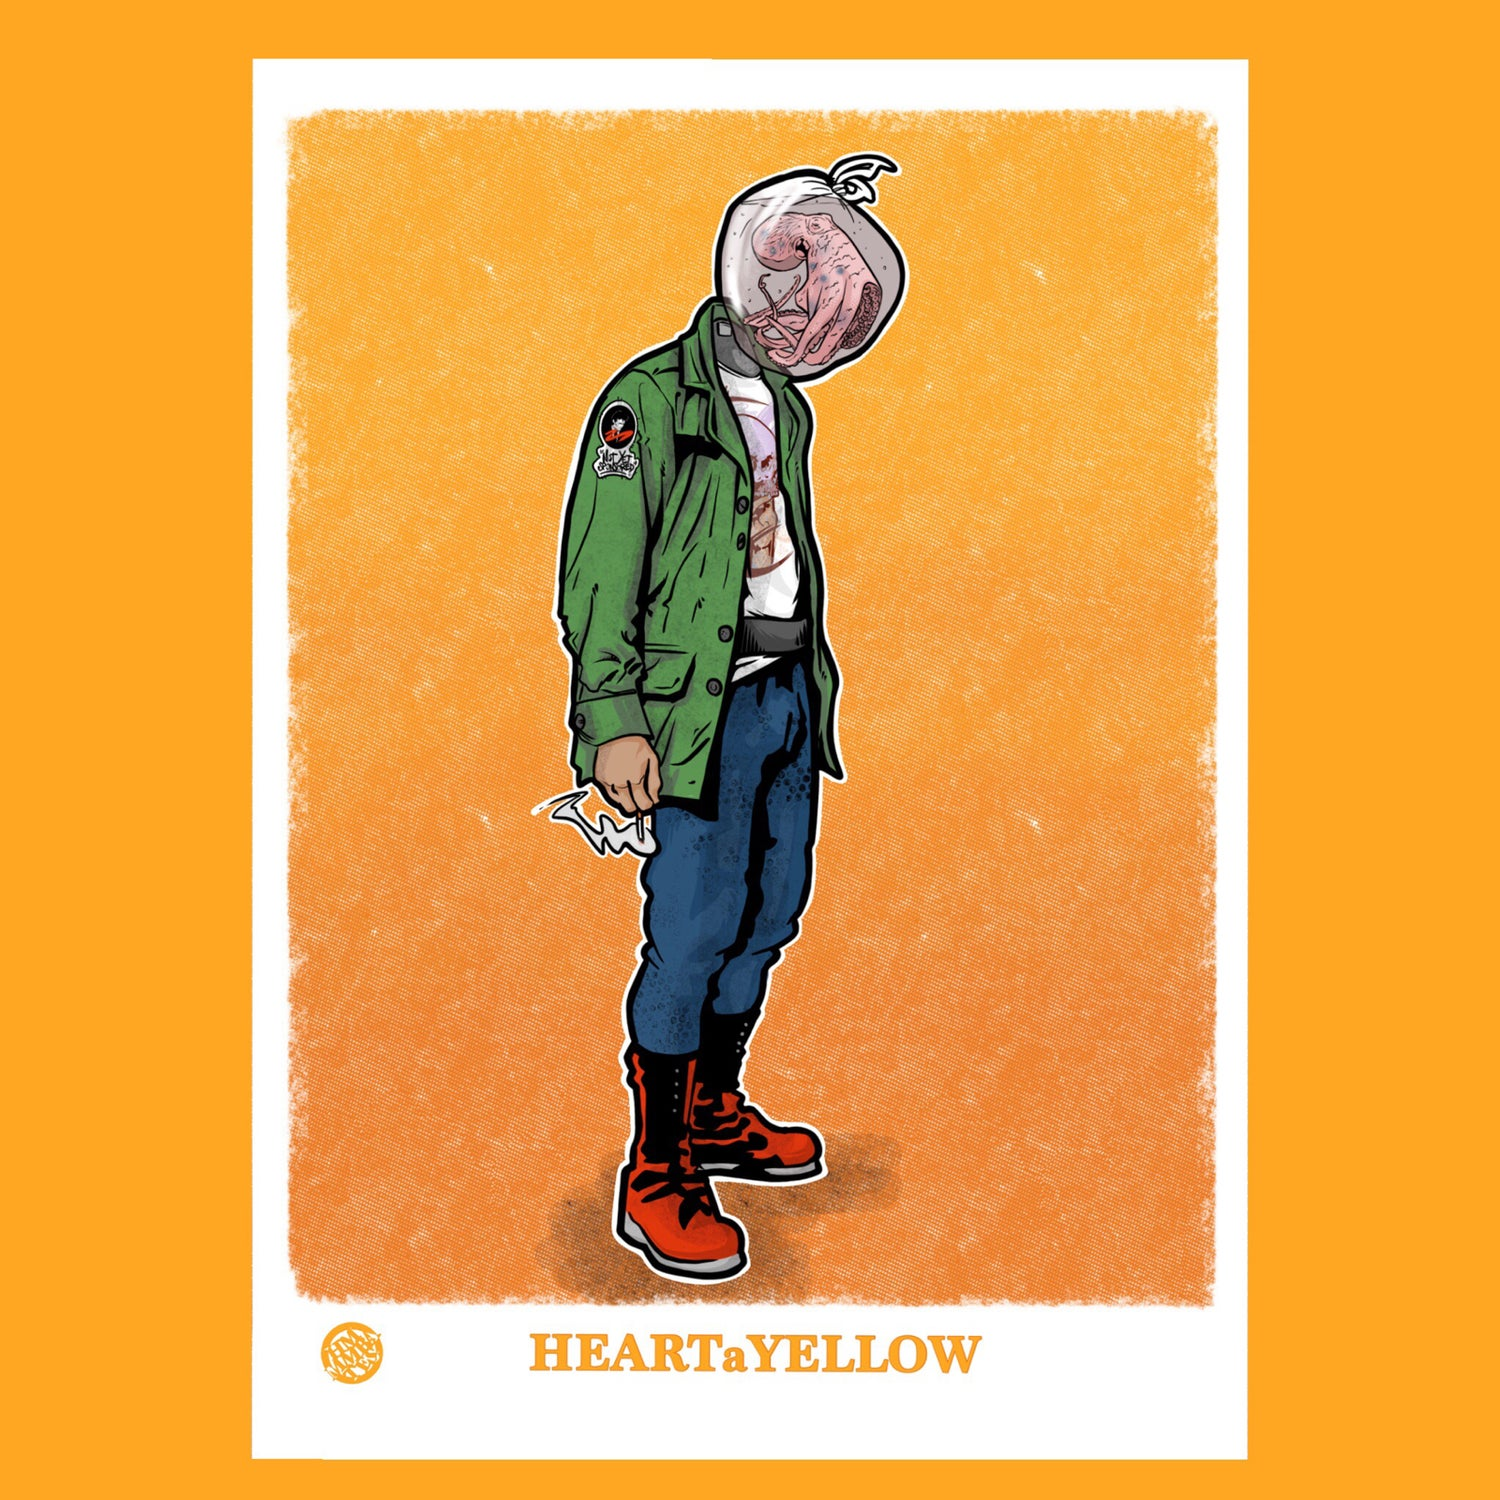 Image of HEARTaYELLOW poster